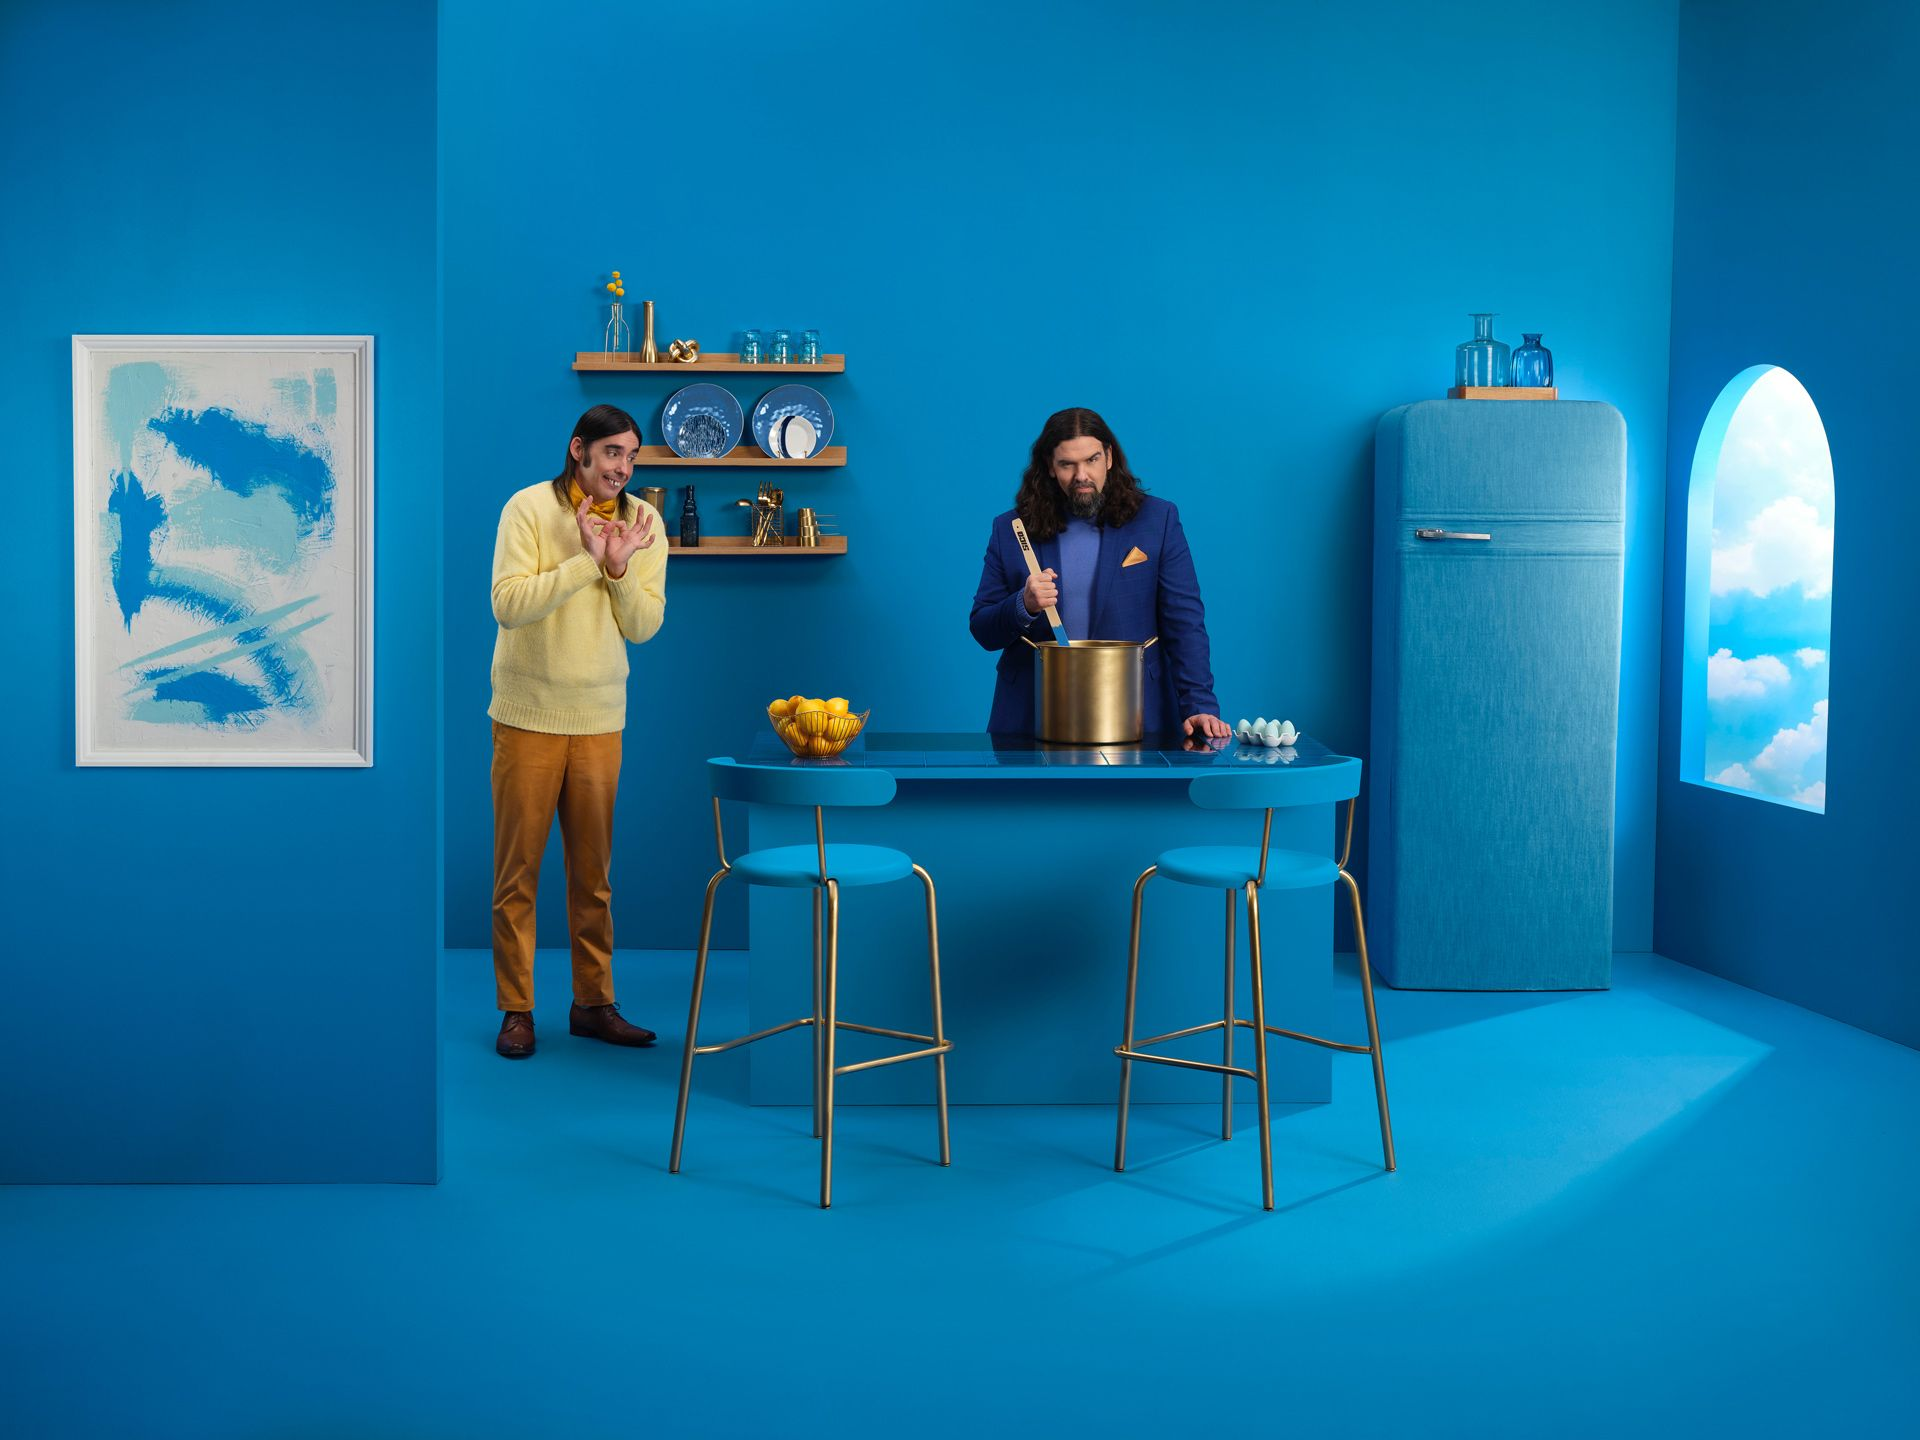 Denis Drolet duo in a kitchen where everything is blue with some gold details. One man is seems to be cooking but he is holding a paint stick.